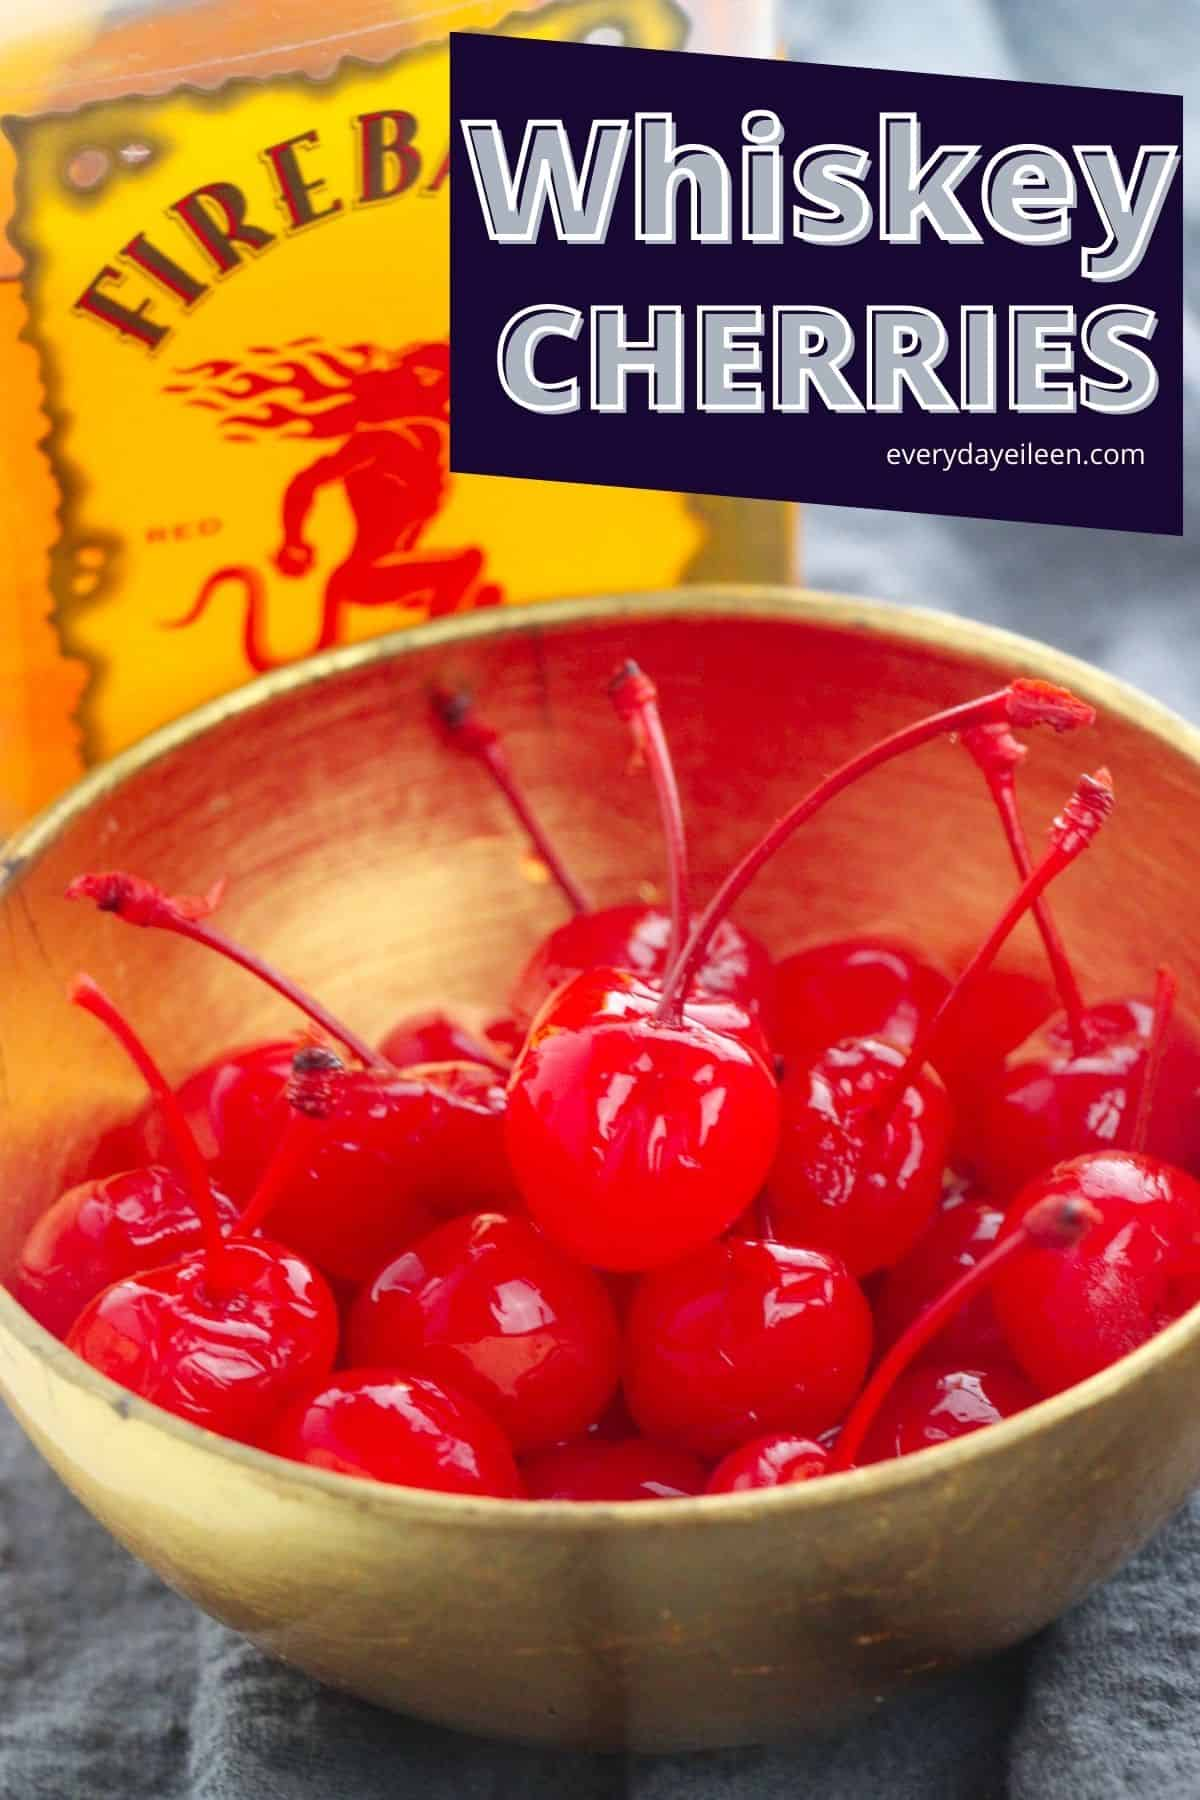 Whiskey infused cherries are the perfect treat for any time of year. Maraschino cherries are soaked in Cinnamon Whiskey to make a decadent treat. Perfect on top of desserts, hot chocolate, Irish coffee, in cocktails. Great as a hostess or Holiday gift. #whiskeycherries #fireballcherries #hostessgifts #everydayeileen via @/everydayeileen/